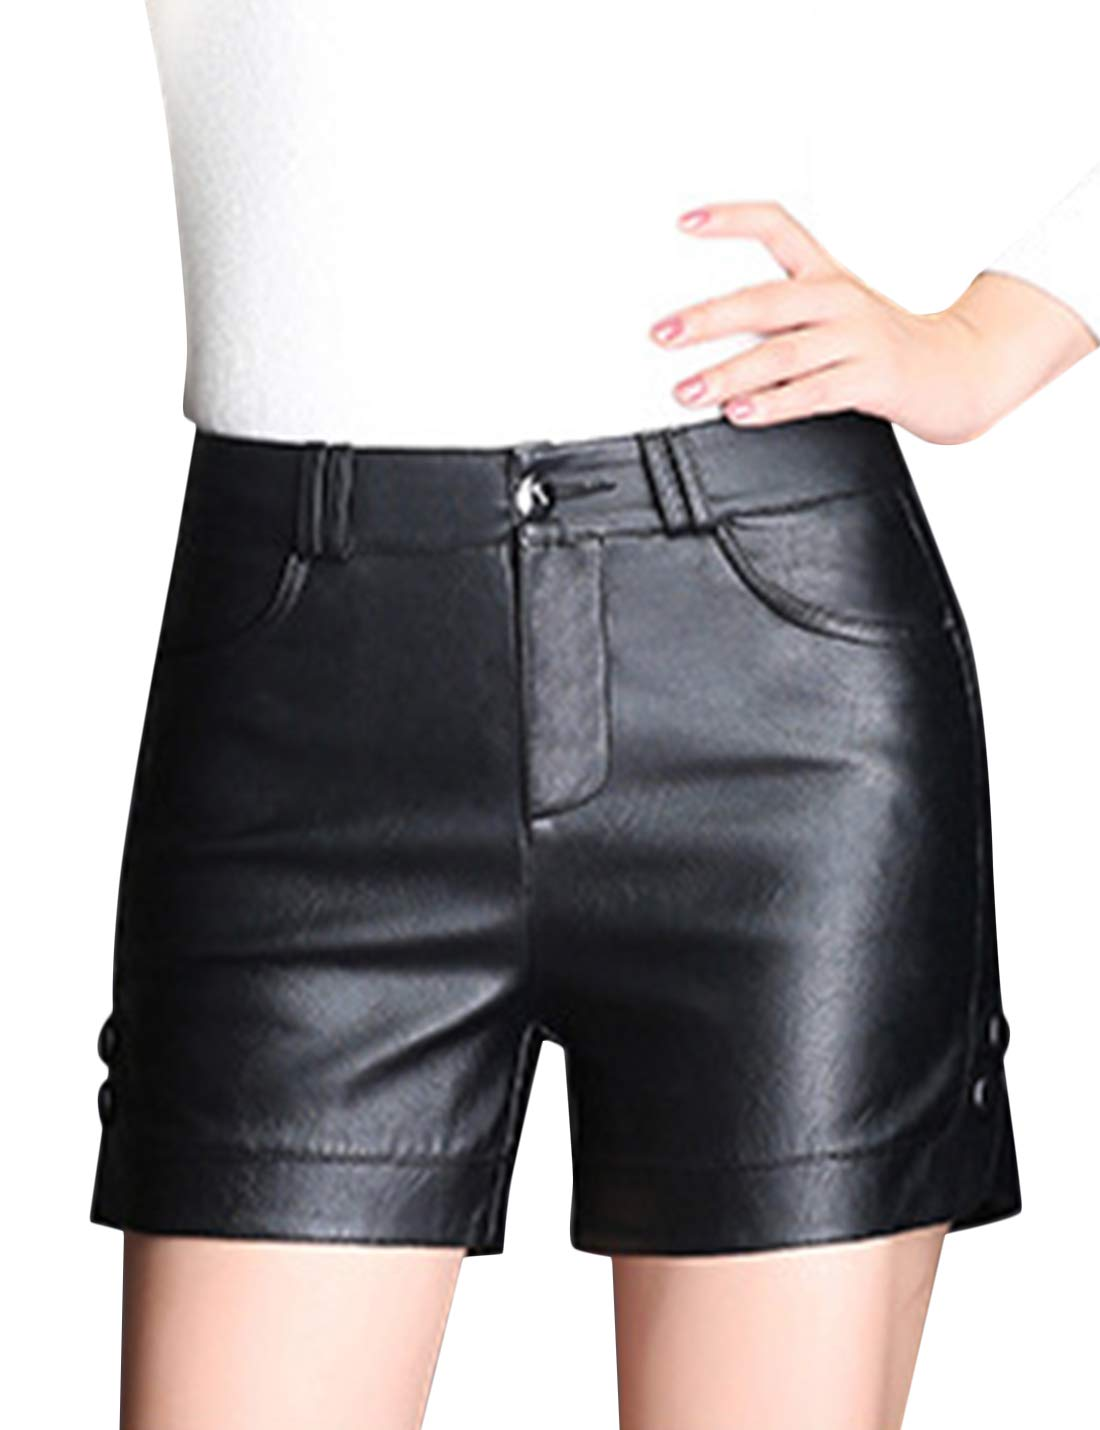 Tanming Womens Winter Casual High Waist Zip up Faux Leather Shorts with Pockets (Black, X-Small)